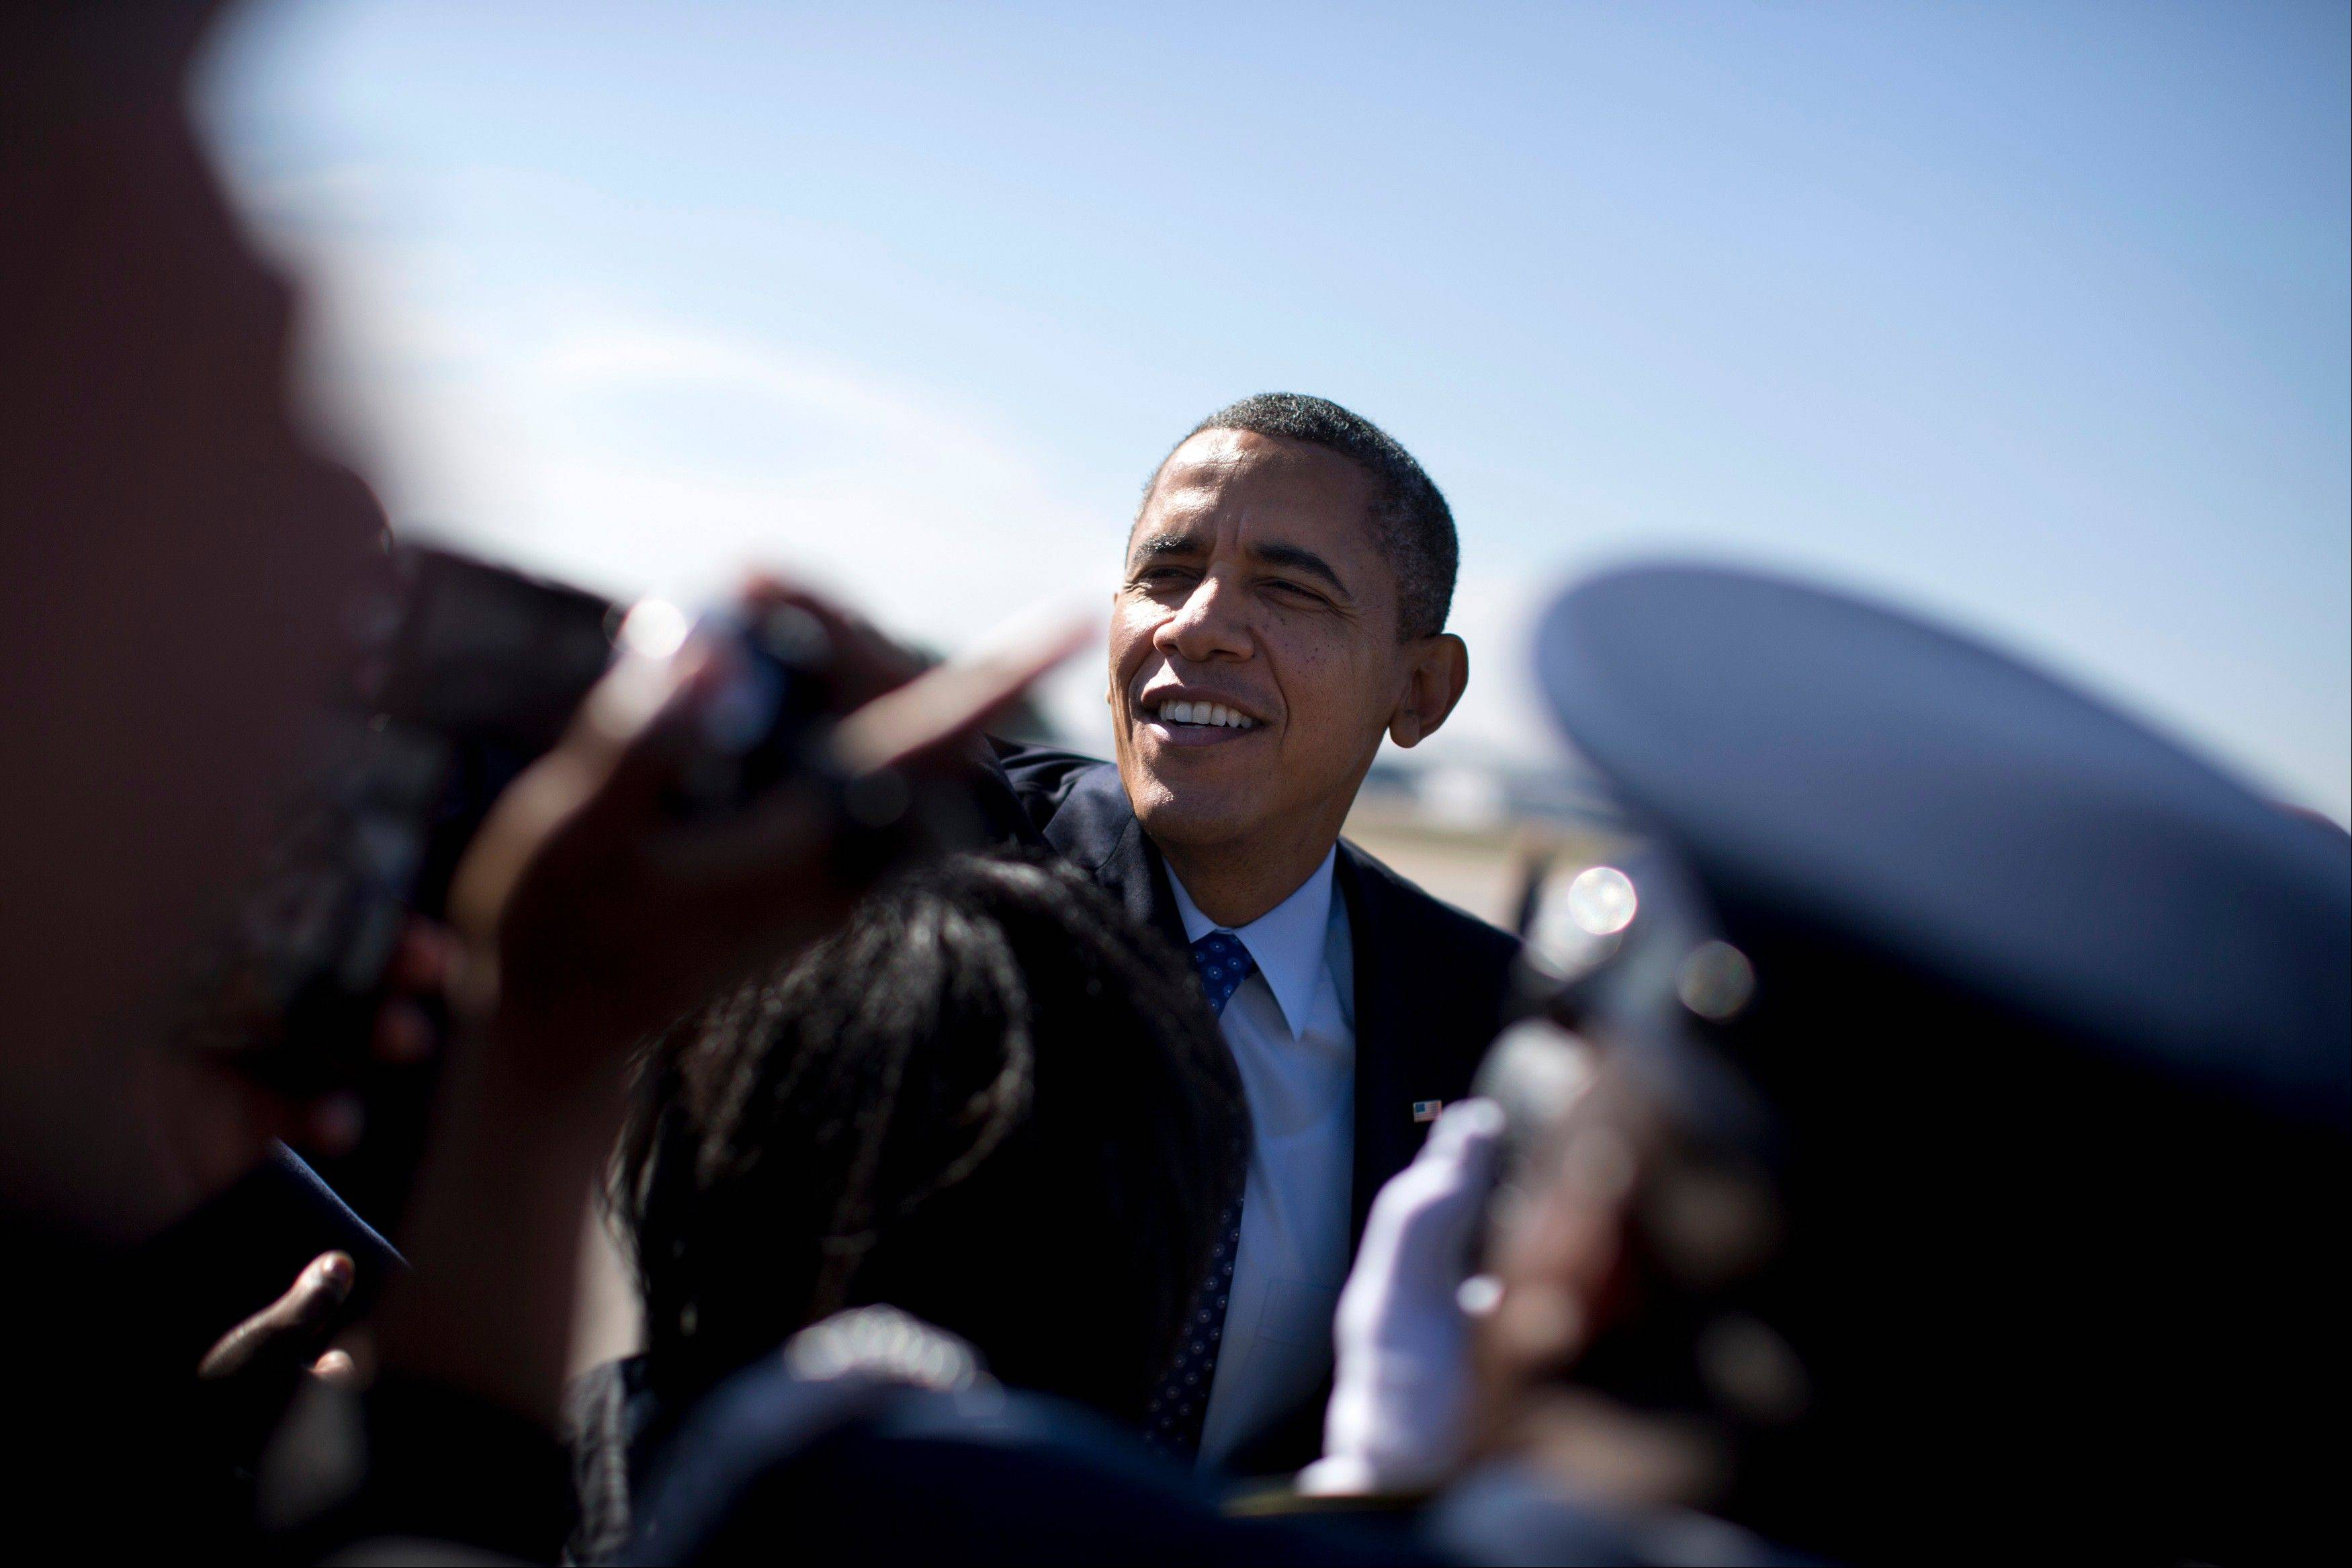 President Barack Obama shakes hands after arriving at Dobbins Air Reserve Base in Decatur, Ga., Thursday.